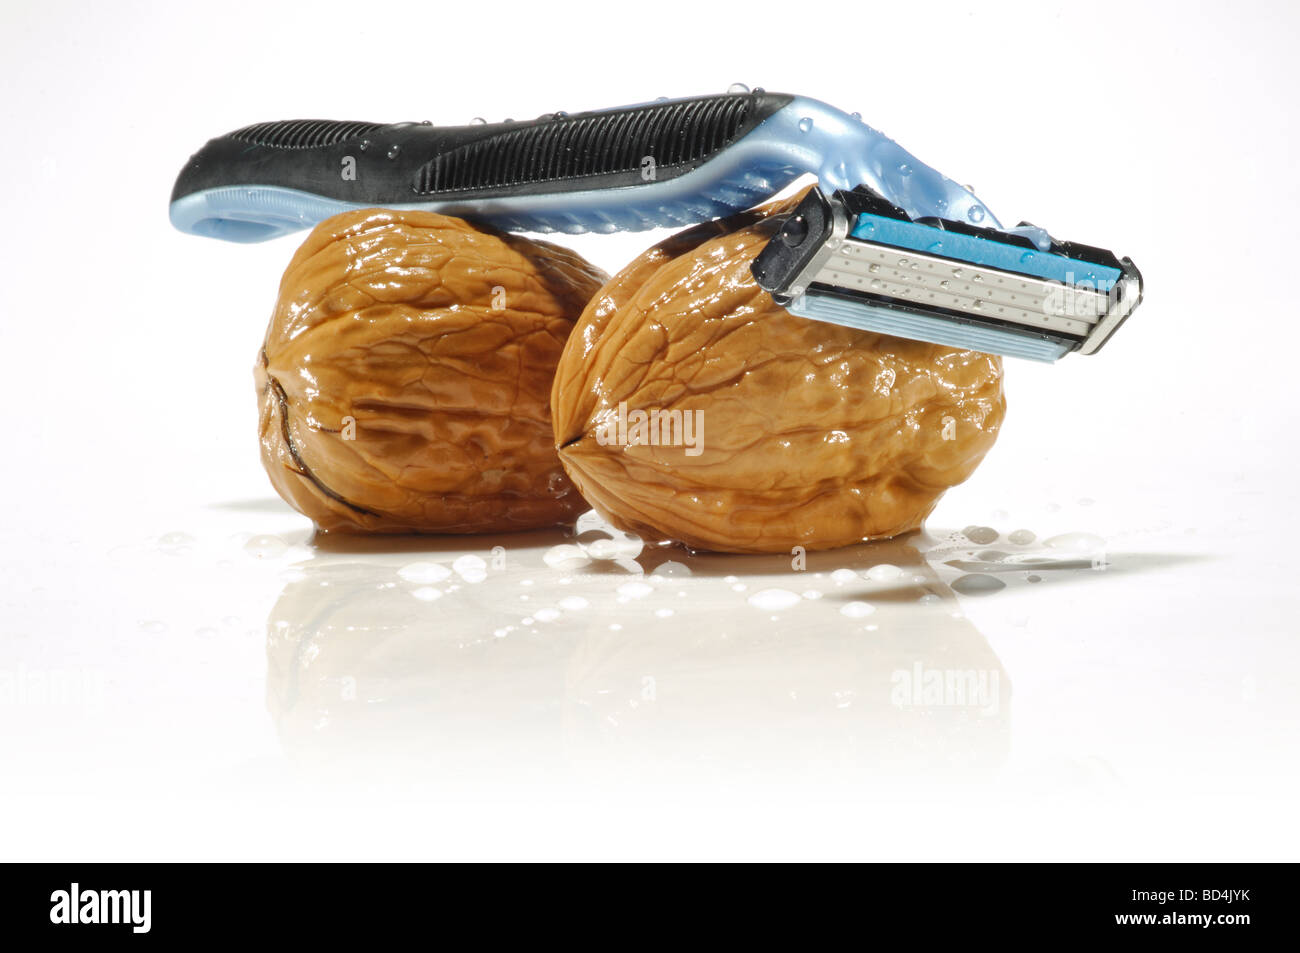 A blue shaving razor balanced on top of two wet walnuts - Stock Image